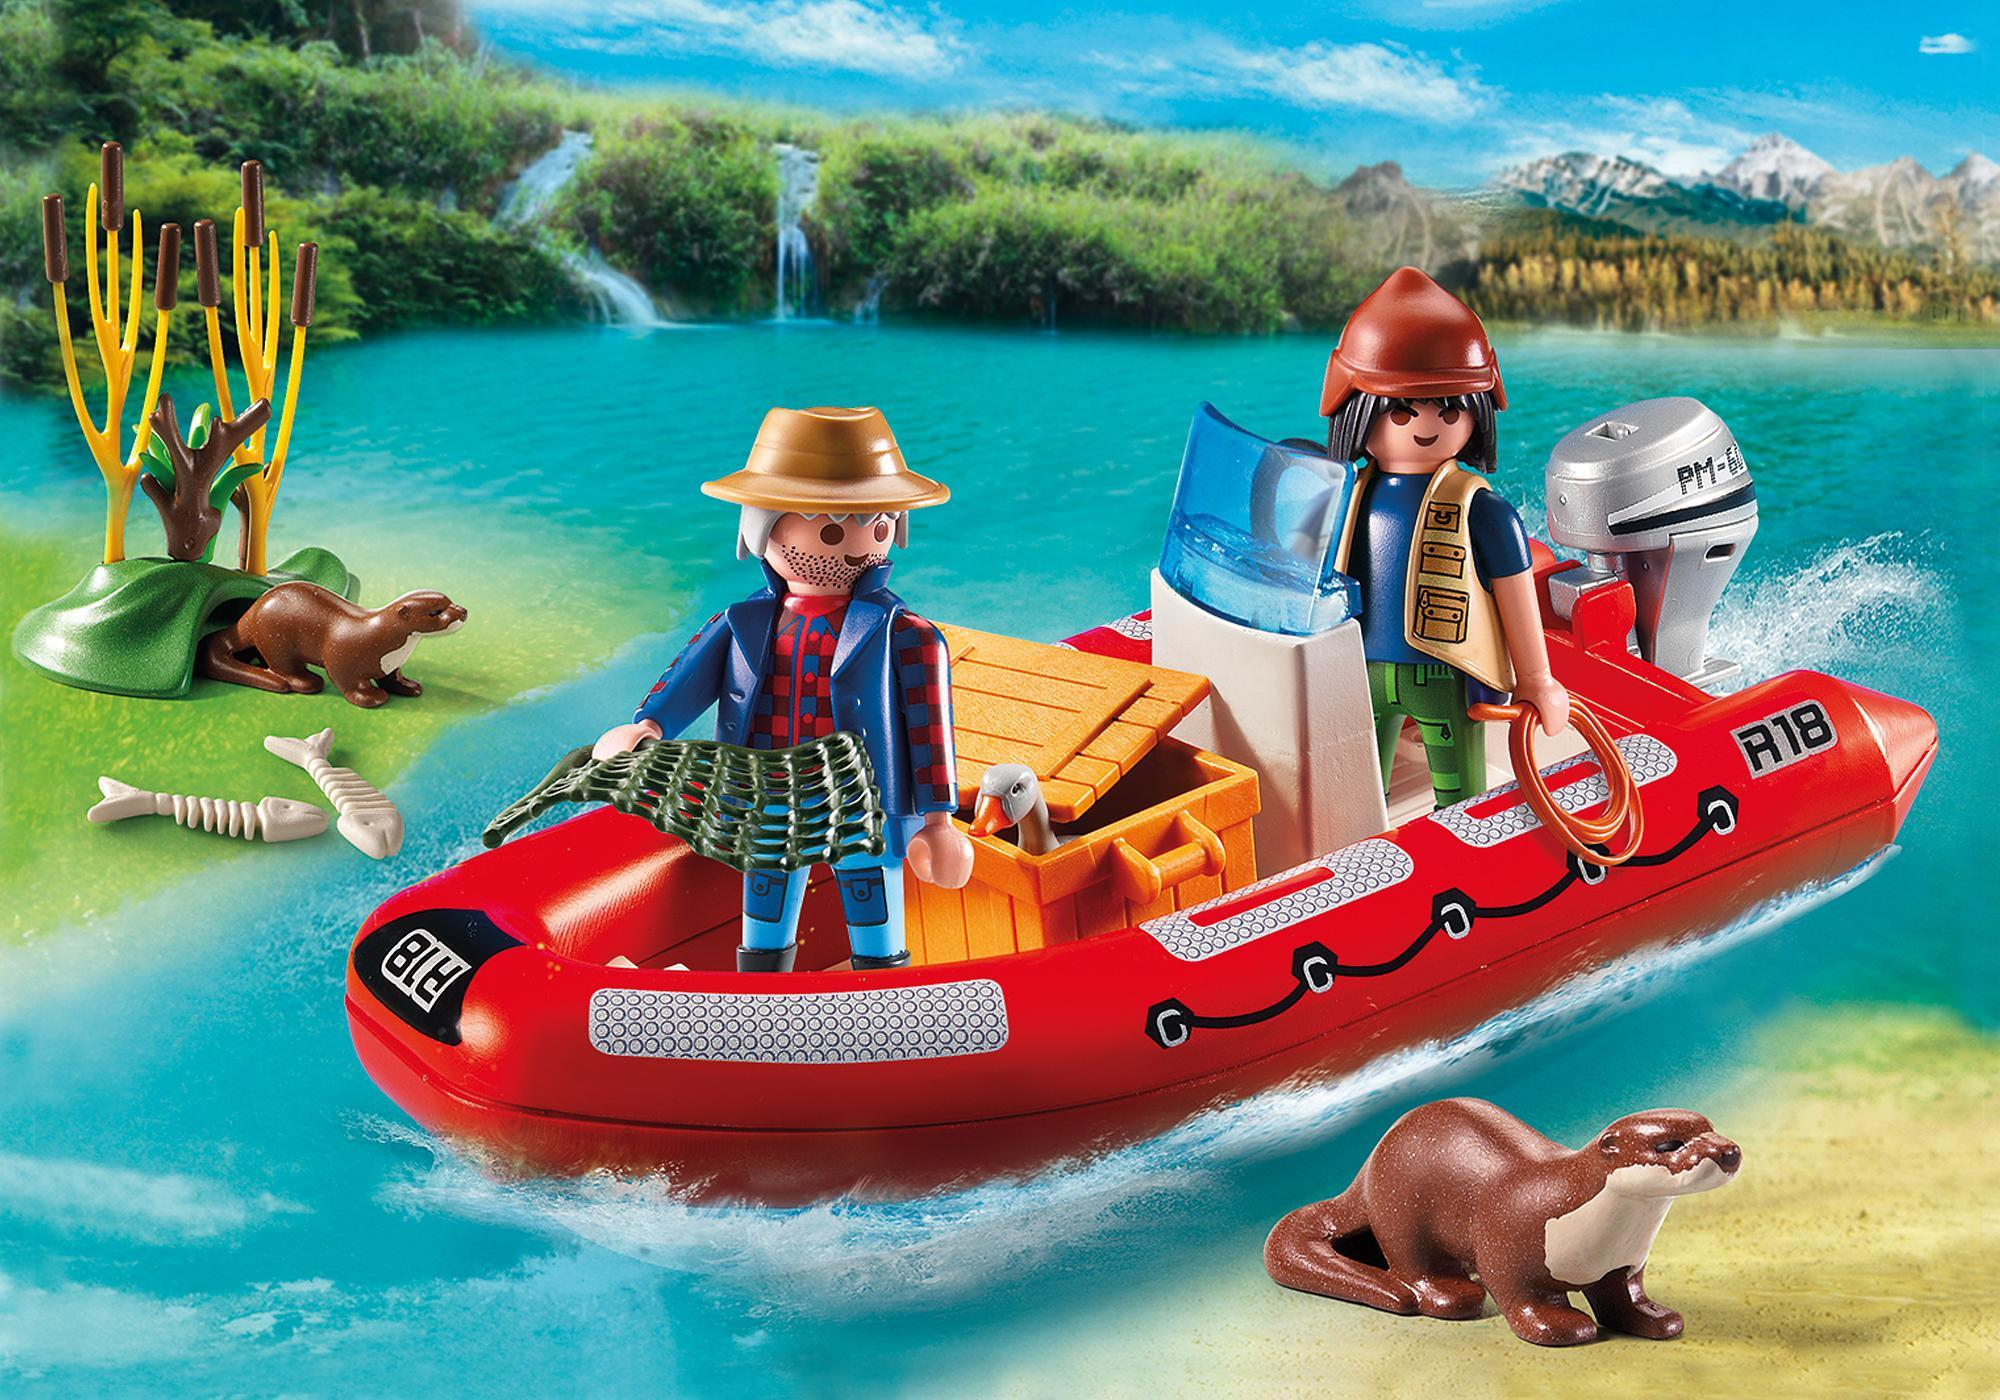 http://media.playmobil.com/i/playmobil/5559_product_detail/Bote Hinchable con Exploradores